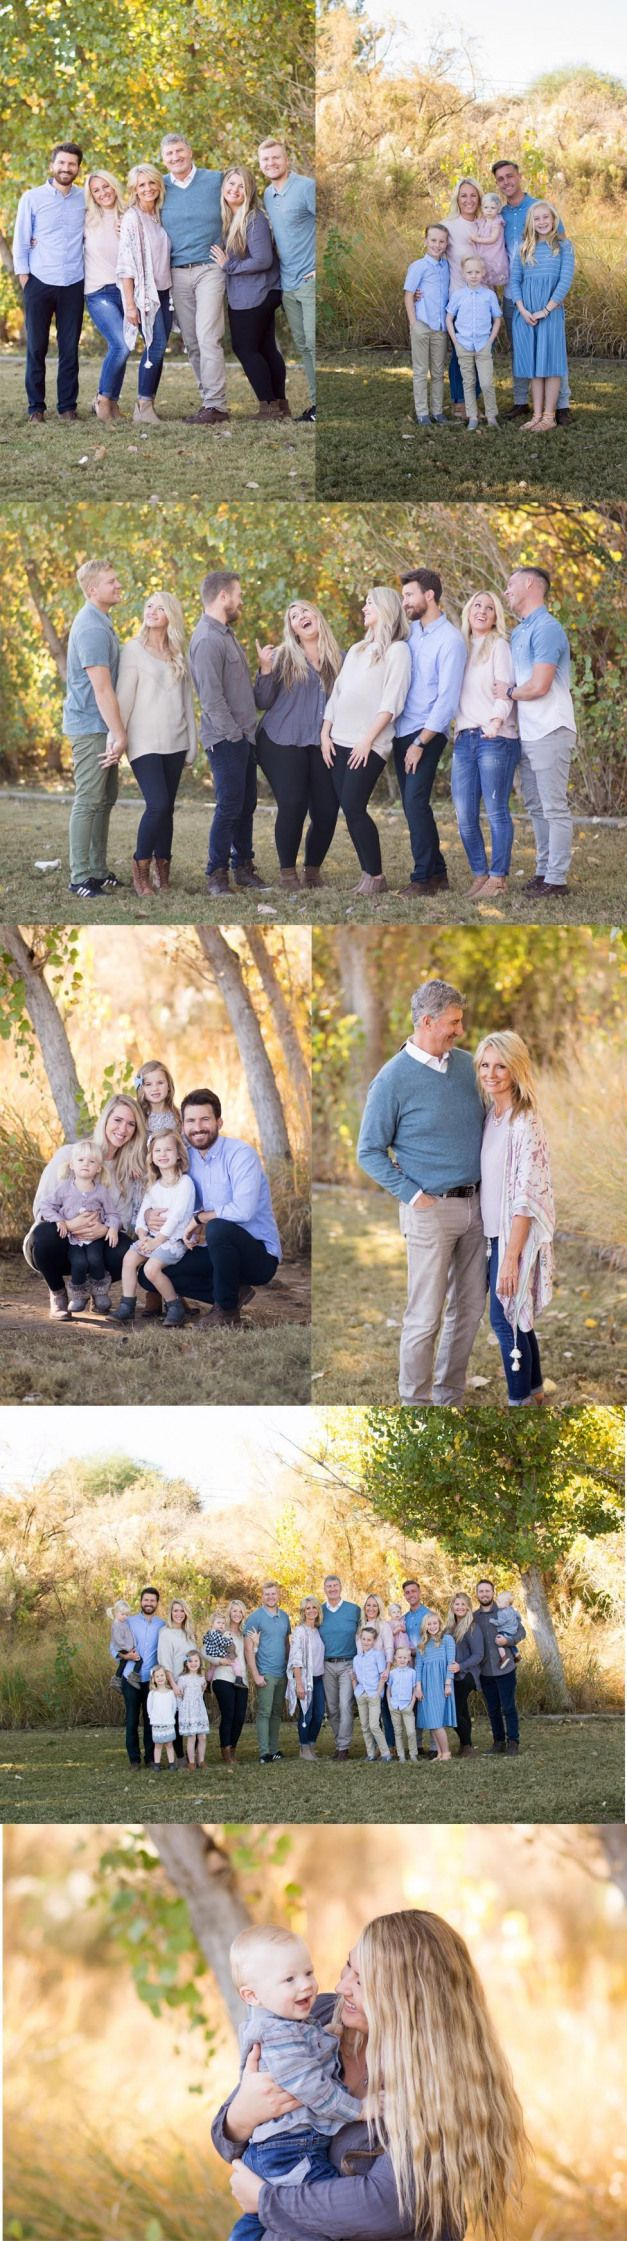 Extended family portrait session in light blues and blush.  Photographed at Nichols Park in Gilbert AZ by Arizona family portrait photographer Melissa Maxwell of Jubilee Family Photography. #familyphotography #family #photography #what #to #wear #extendedfamilyphotography